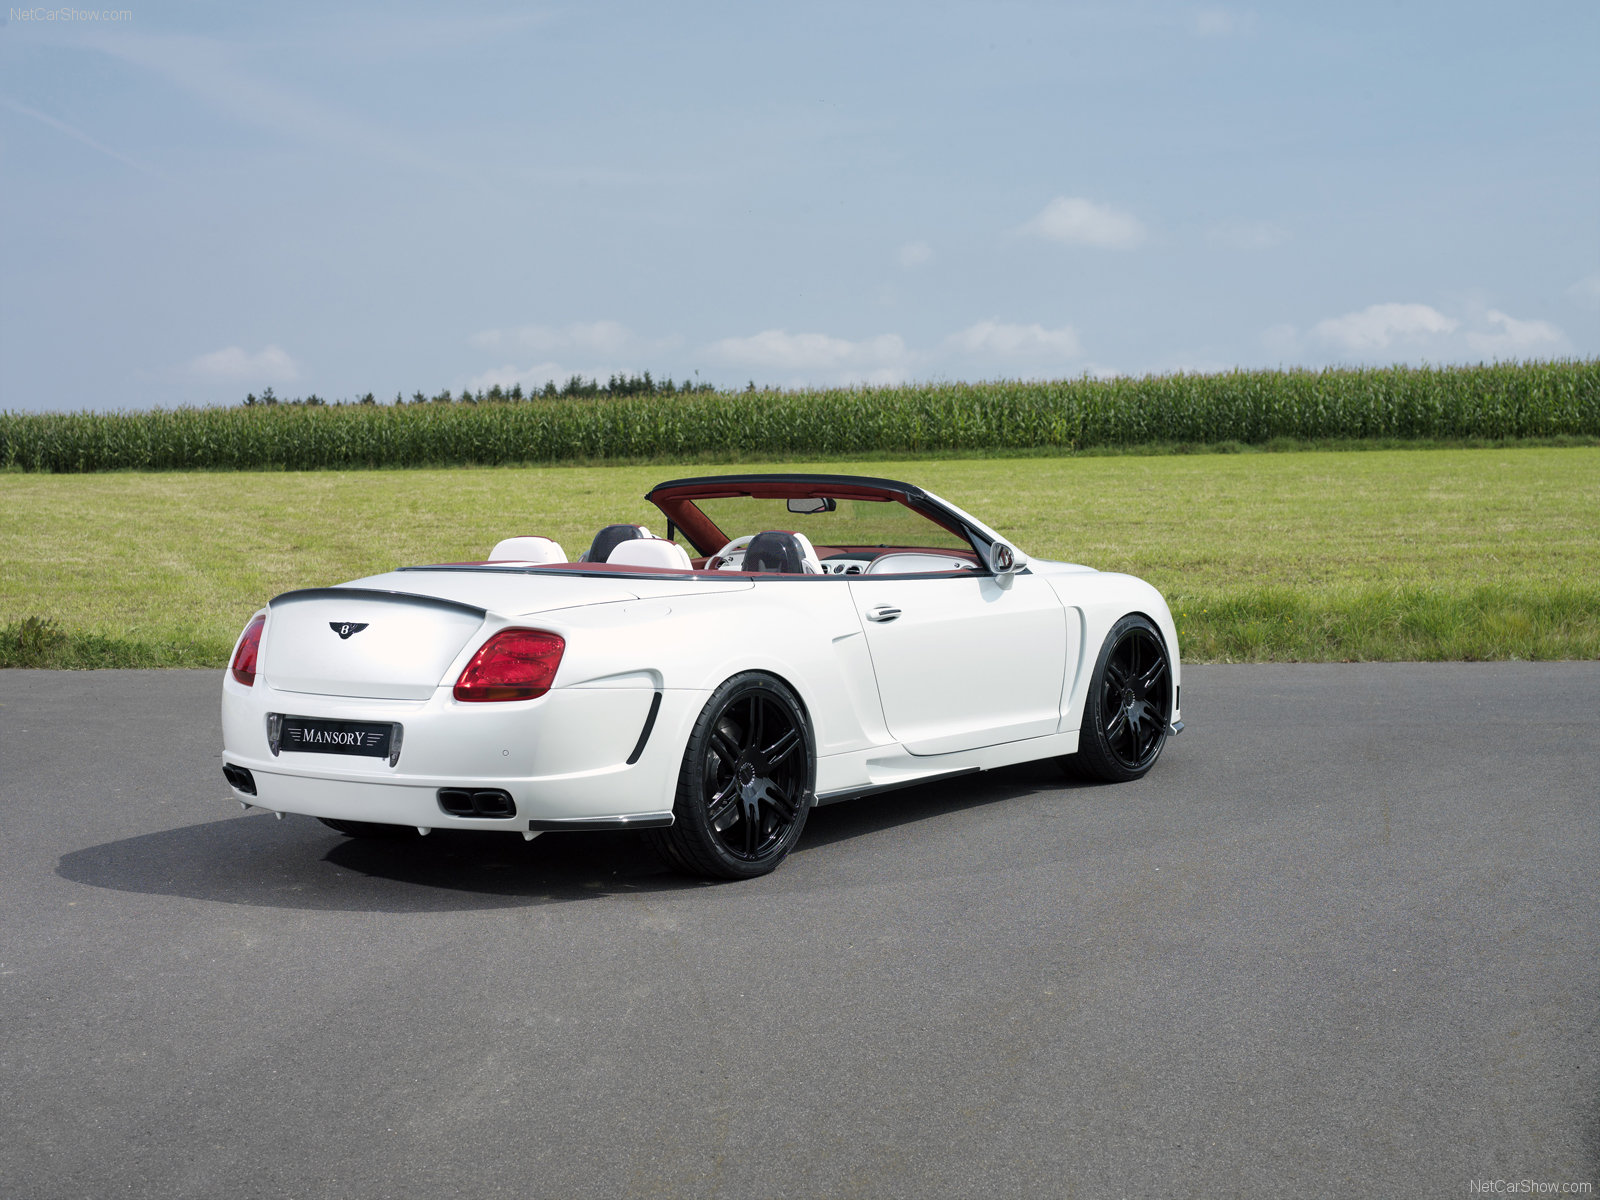 Mansory Le Mansory Convertible photo 47724